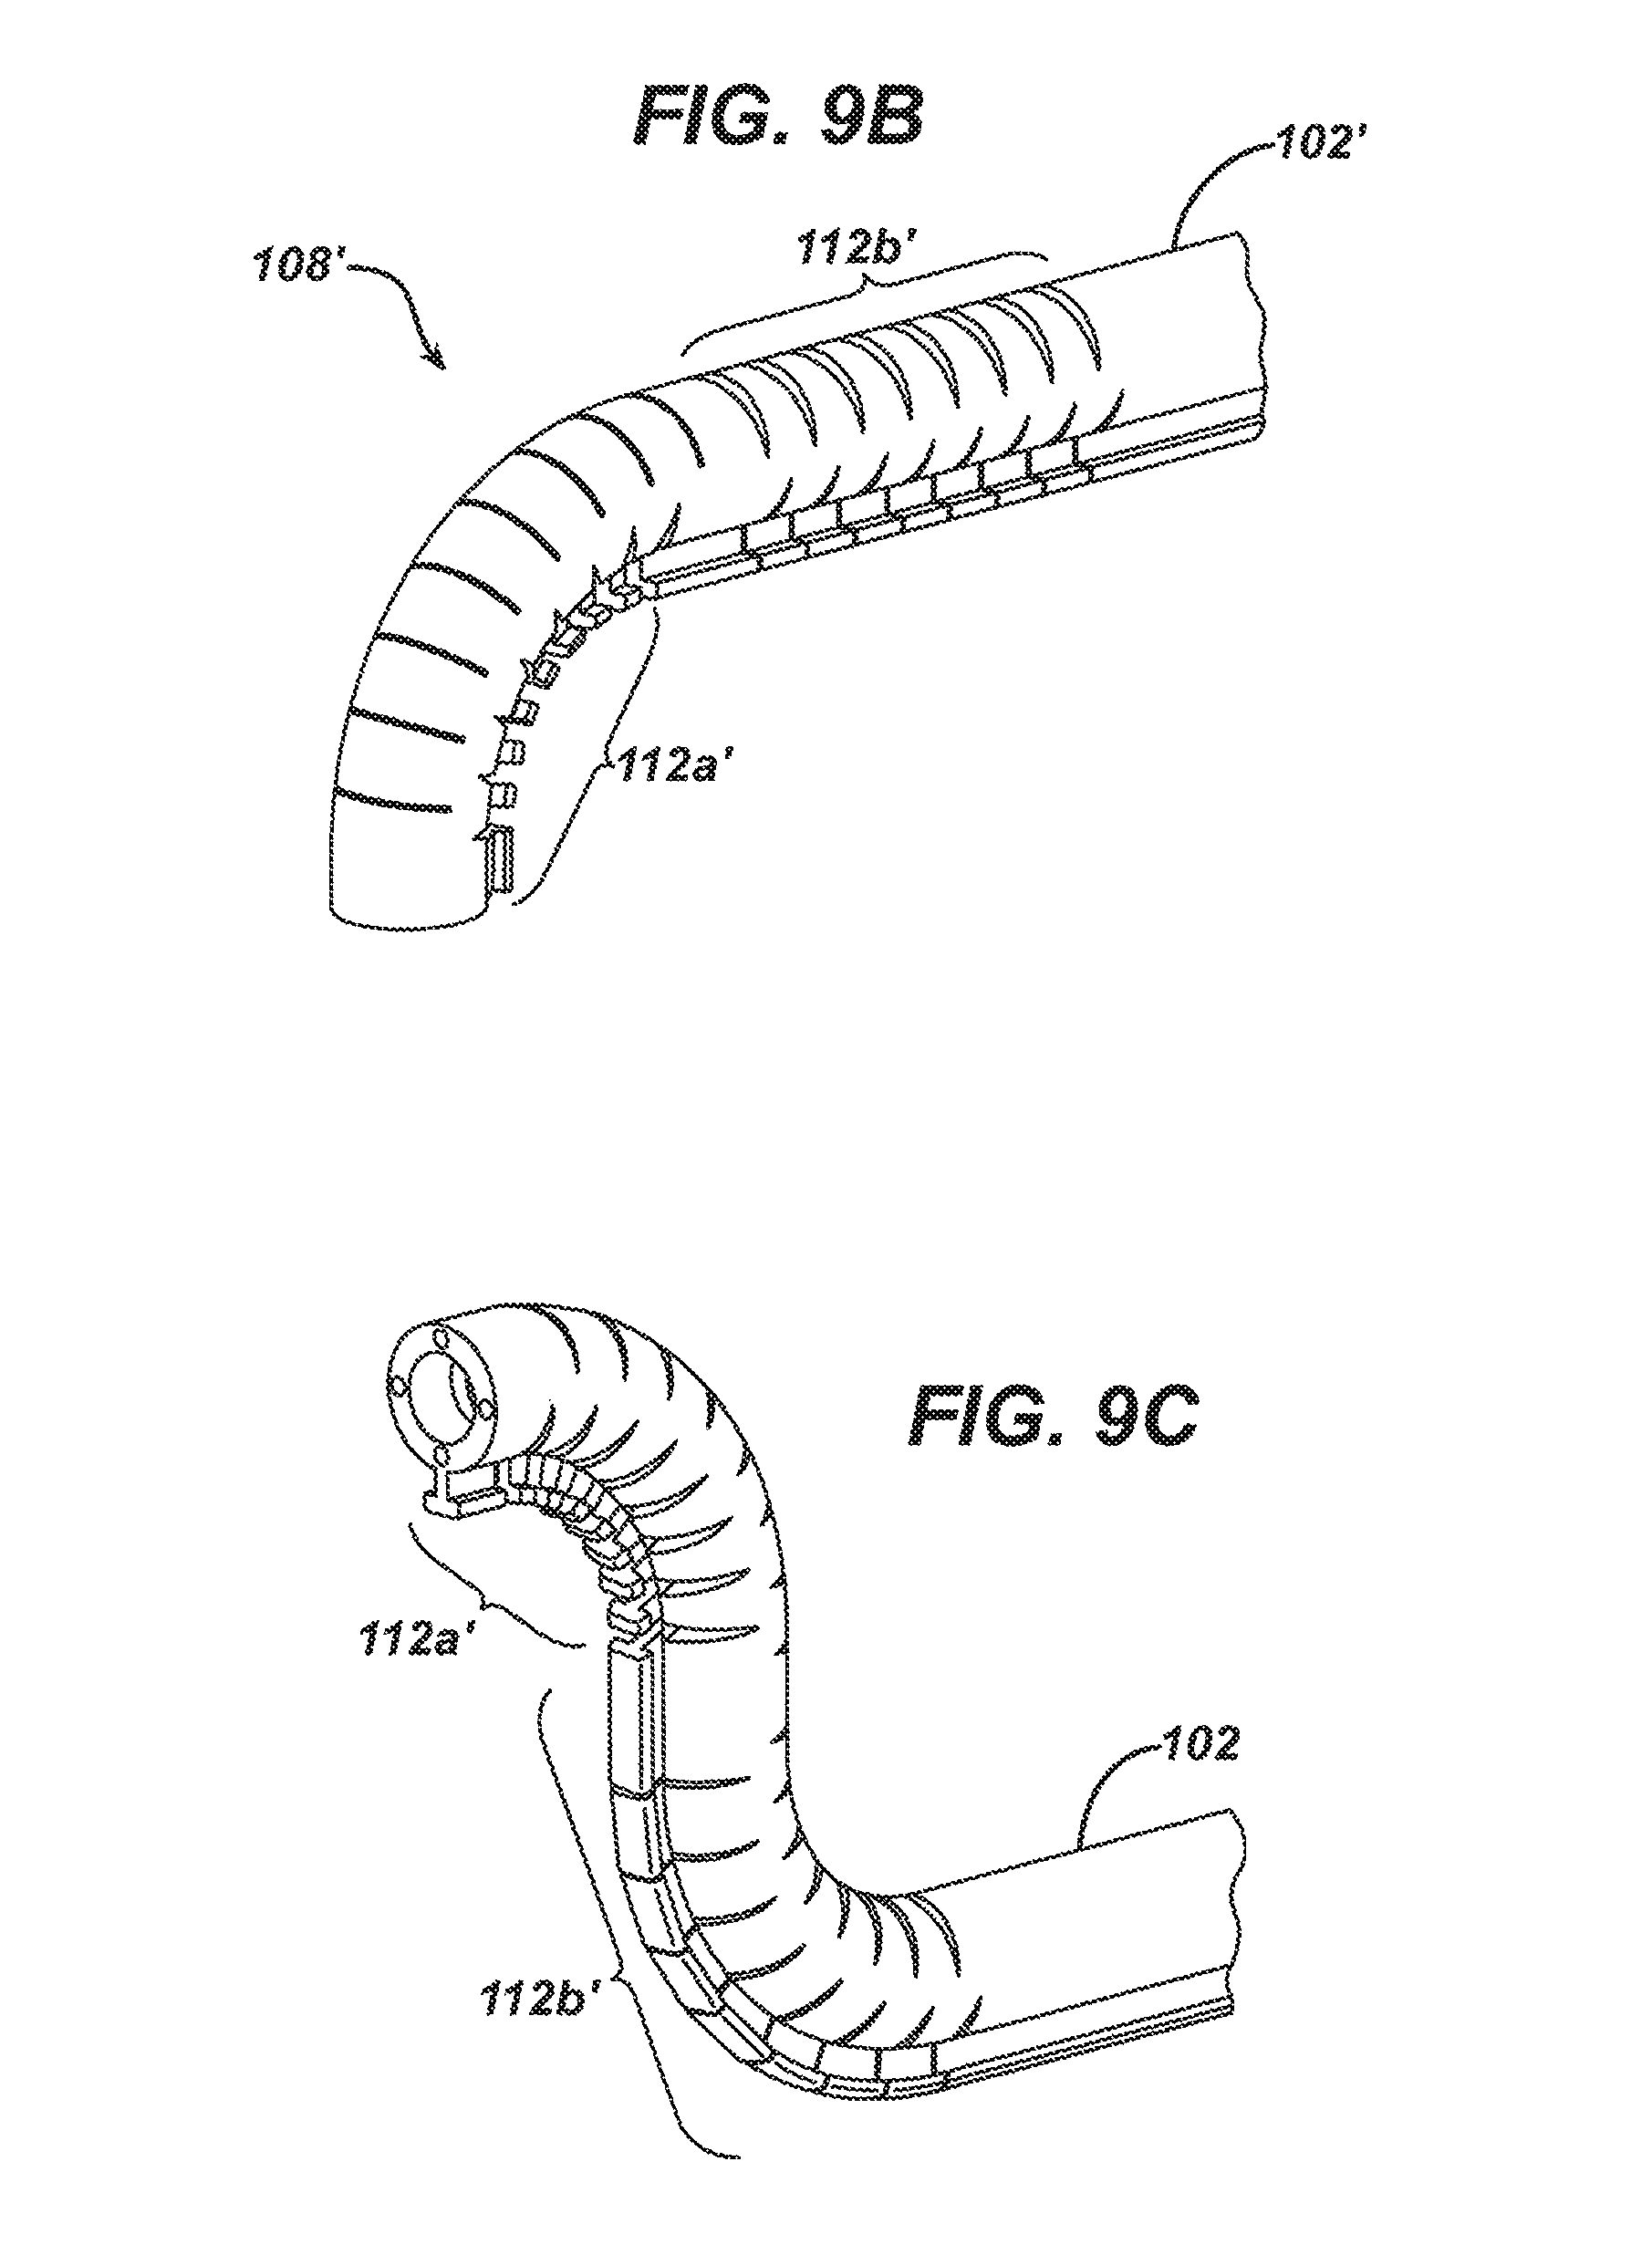 Us9492167b2 Articulatable Surgical Device With Rotary Driven Honda C110d Electrical Wiring Diagram Cutting Member Google Patents